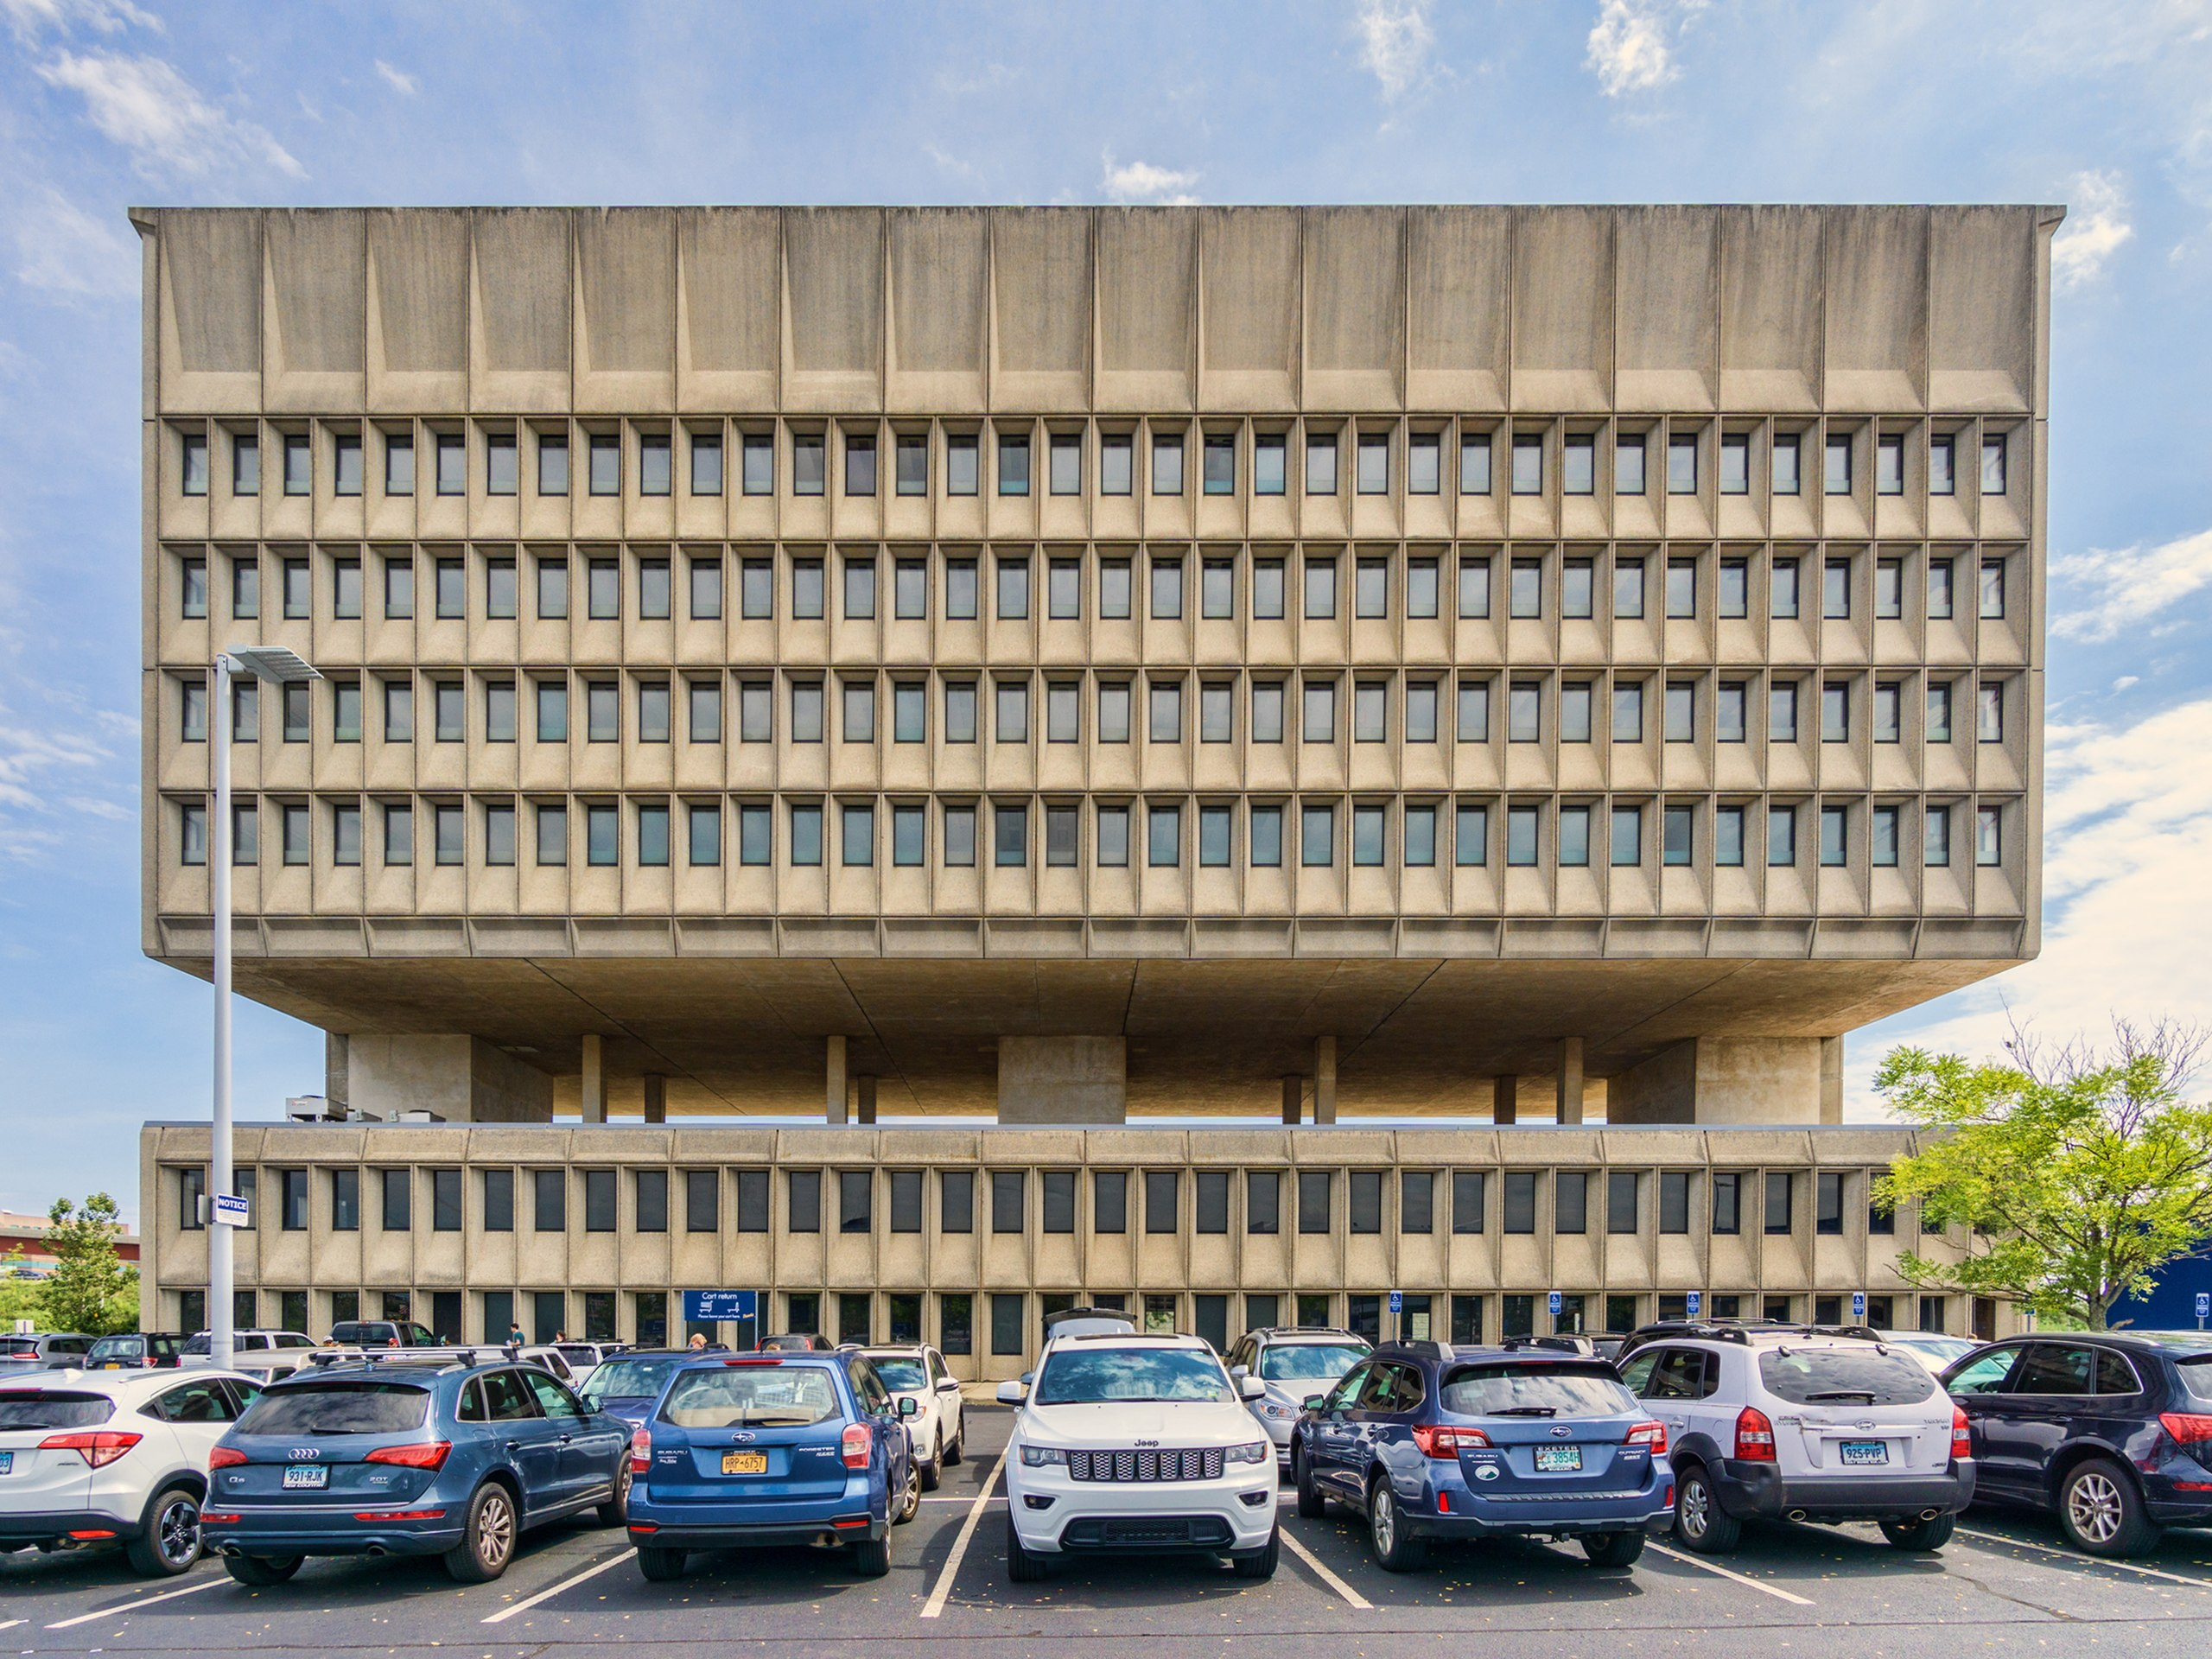 The Pirelli Tire Building, a concrete combed building with two hemispheres